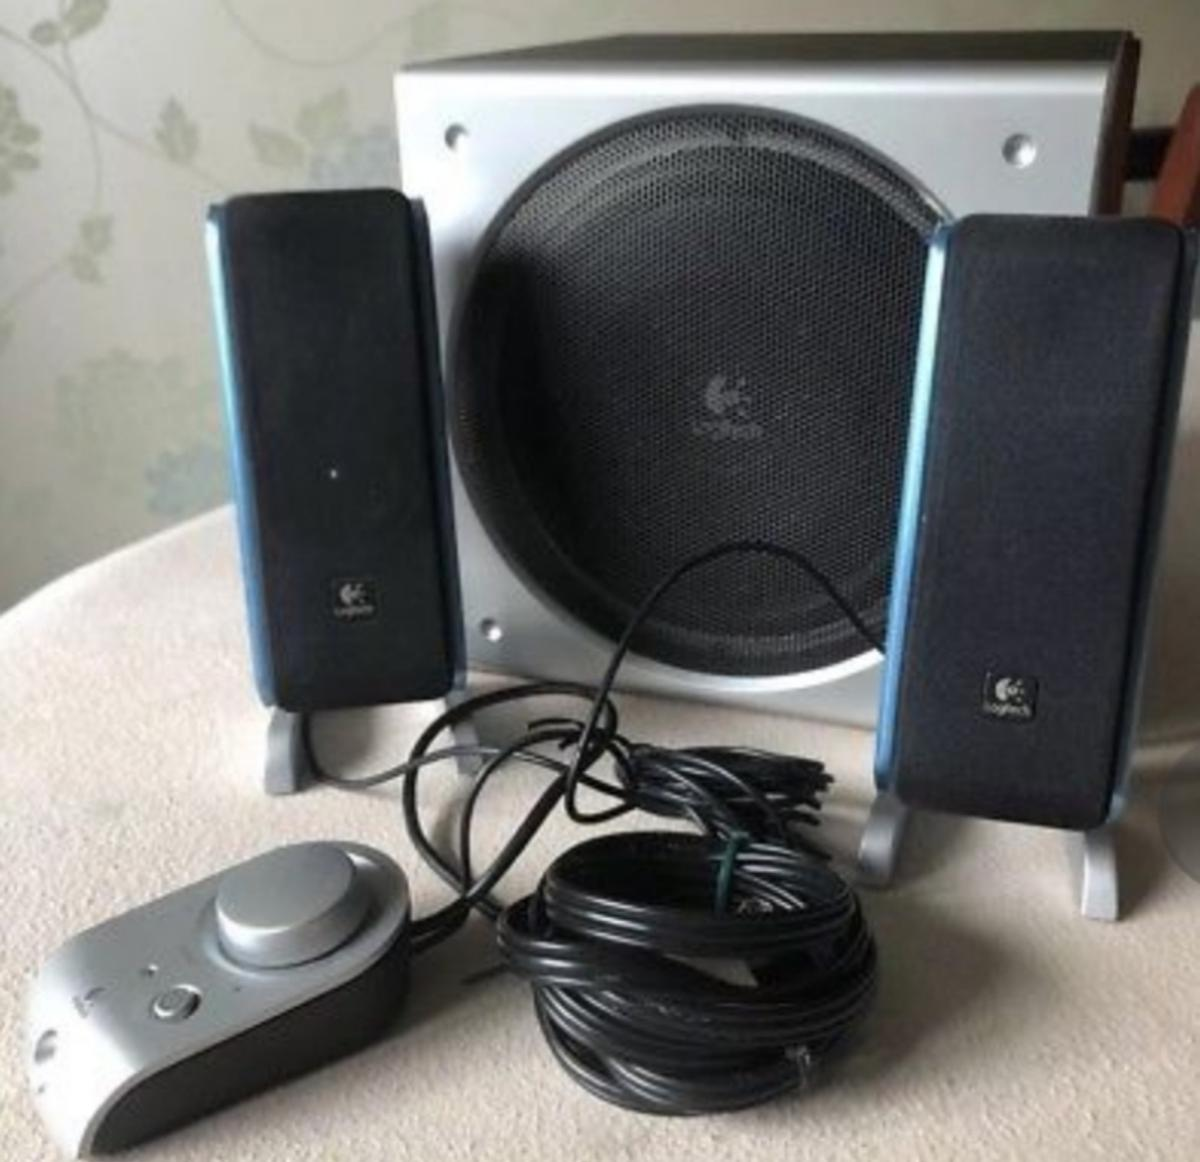 716823f46b1 Speaker with Subwoofer & Desk Speaker in for £30.00 for sale - Shpock